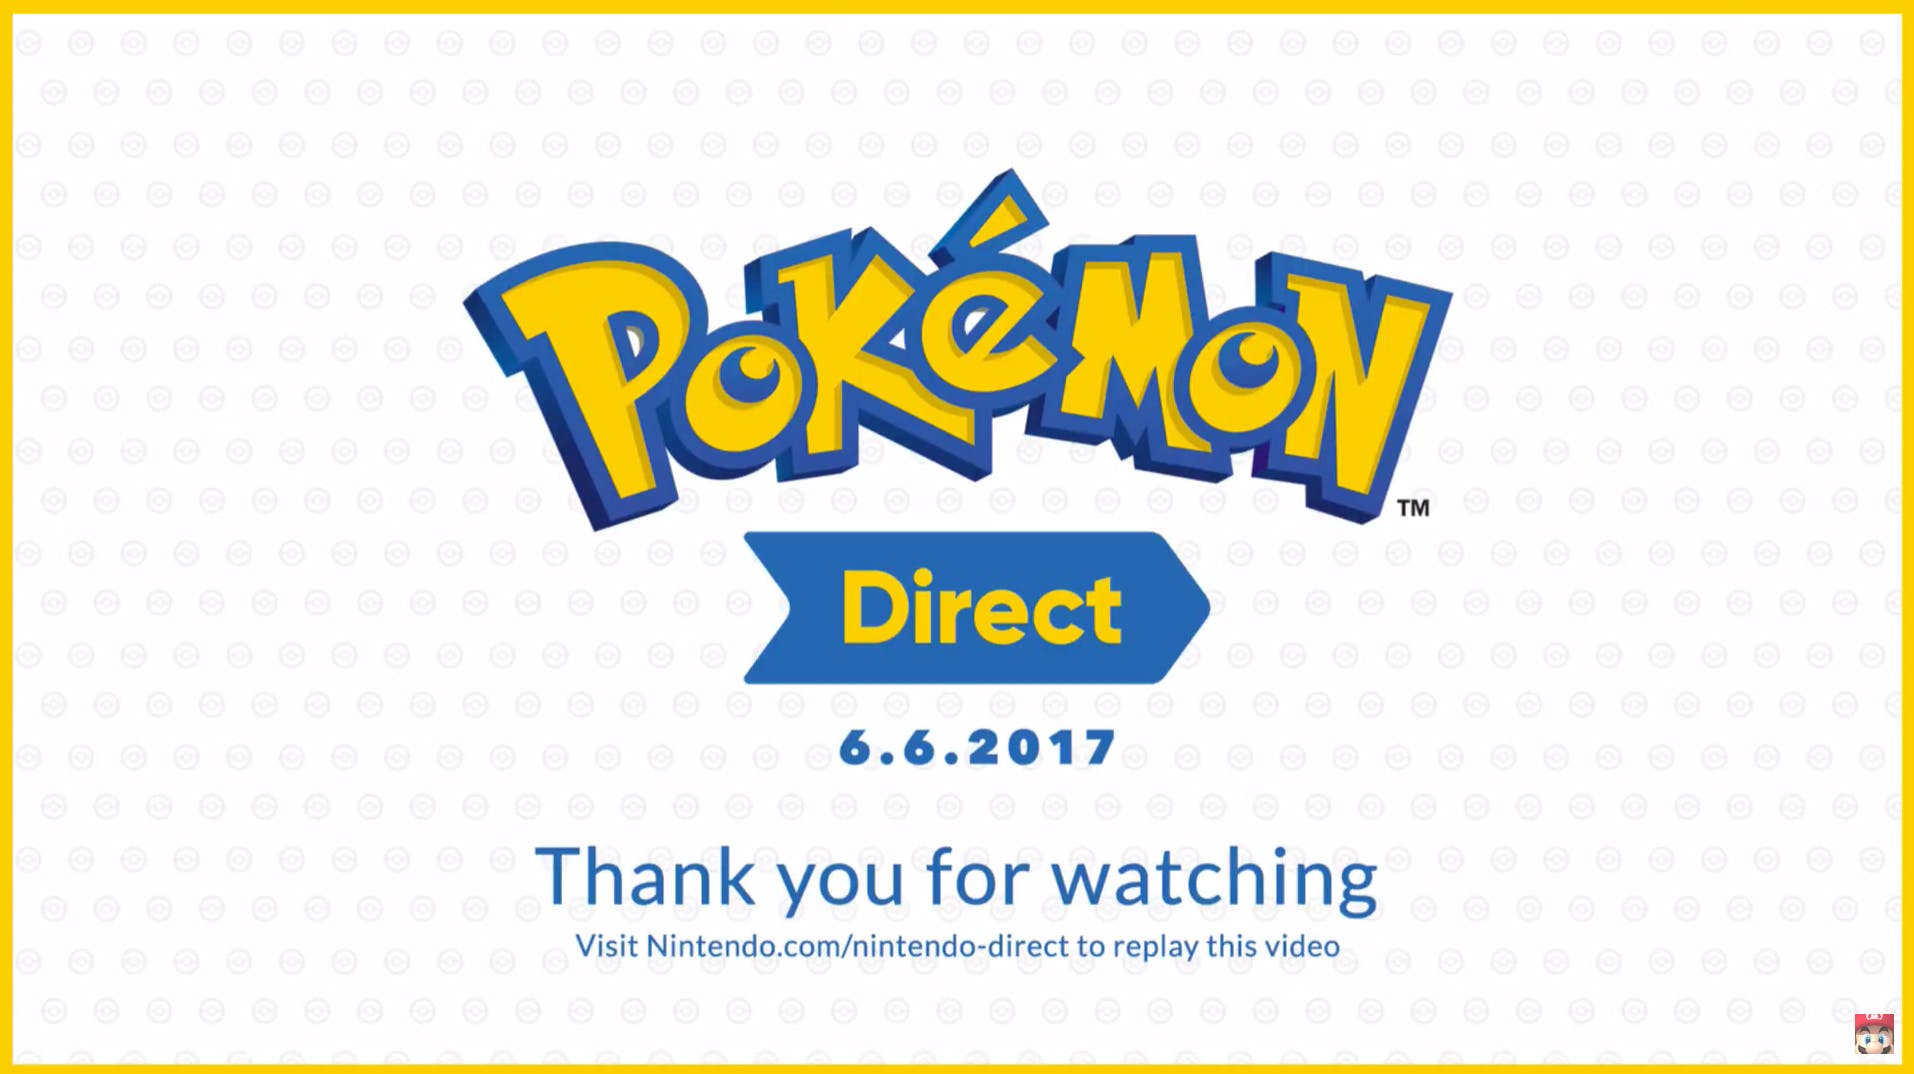 Pokémon Direct Livestream from Youtube